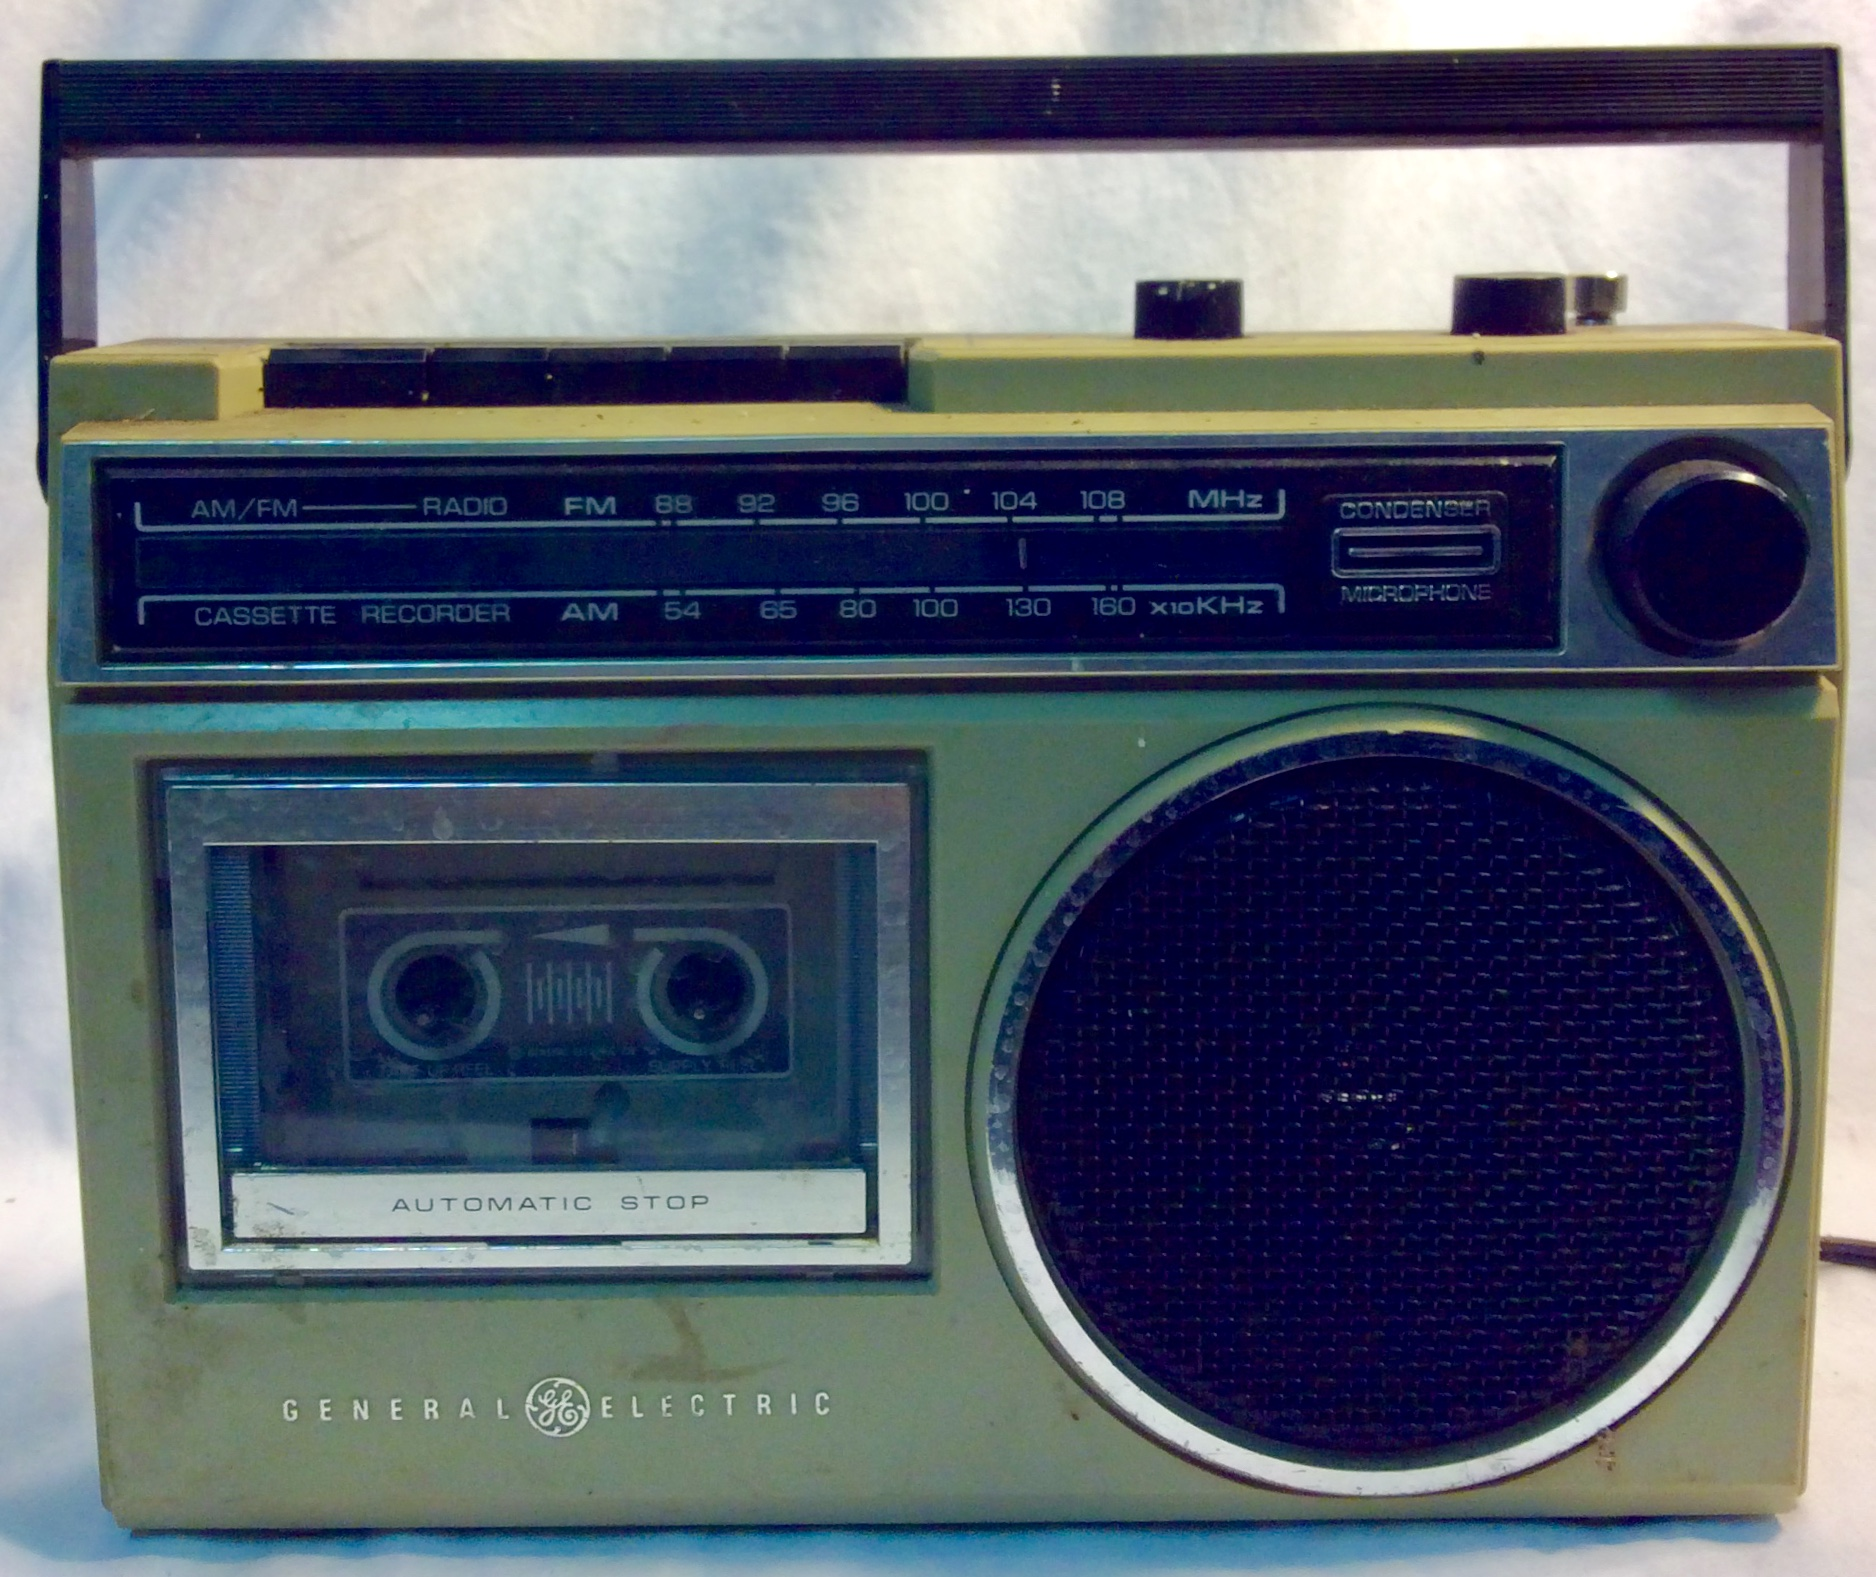 GE portable AM/FM radio and cassete player